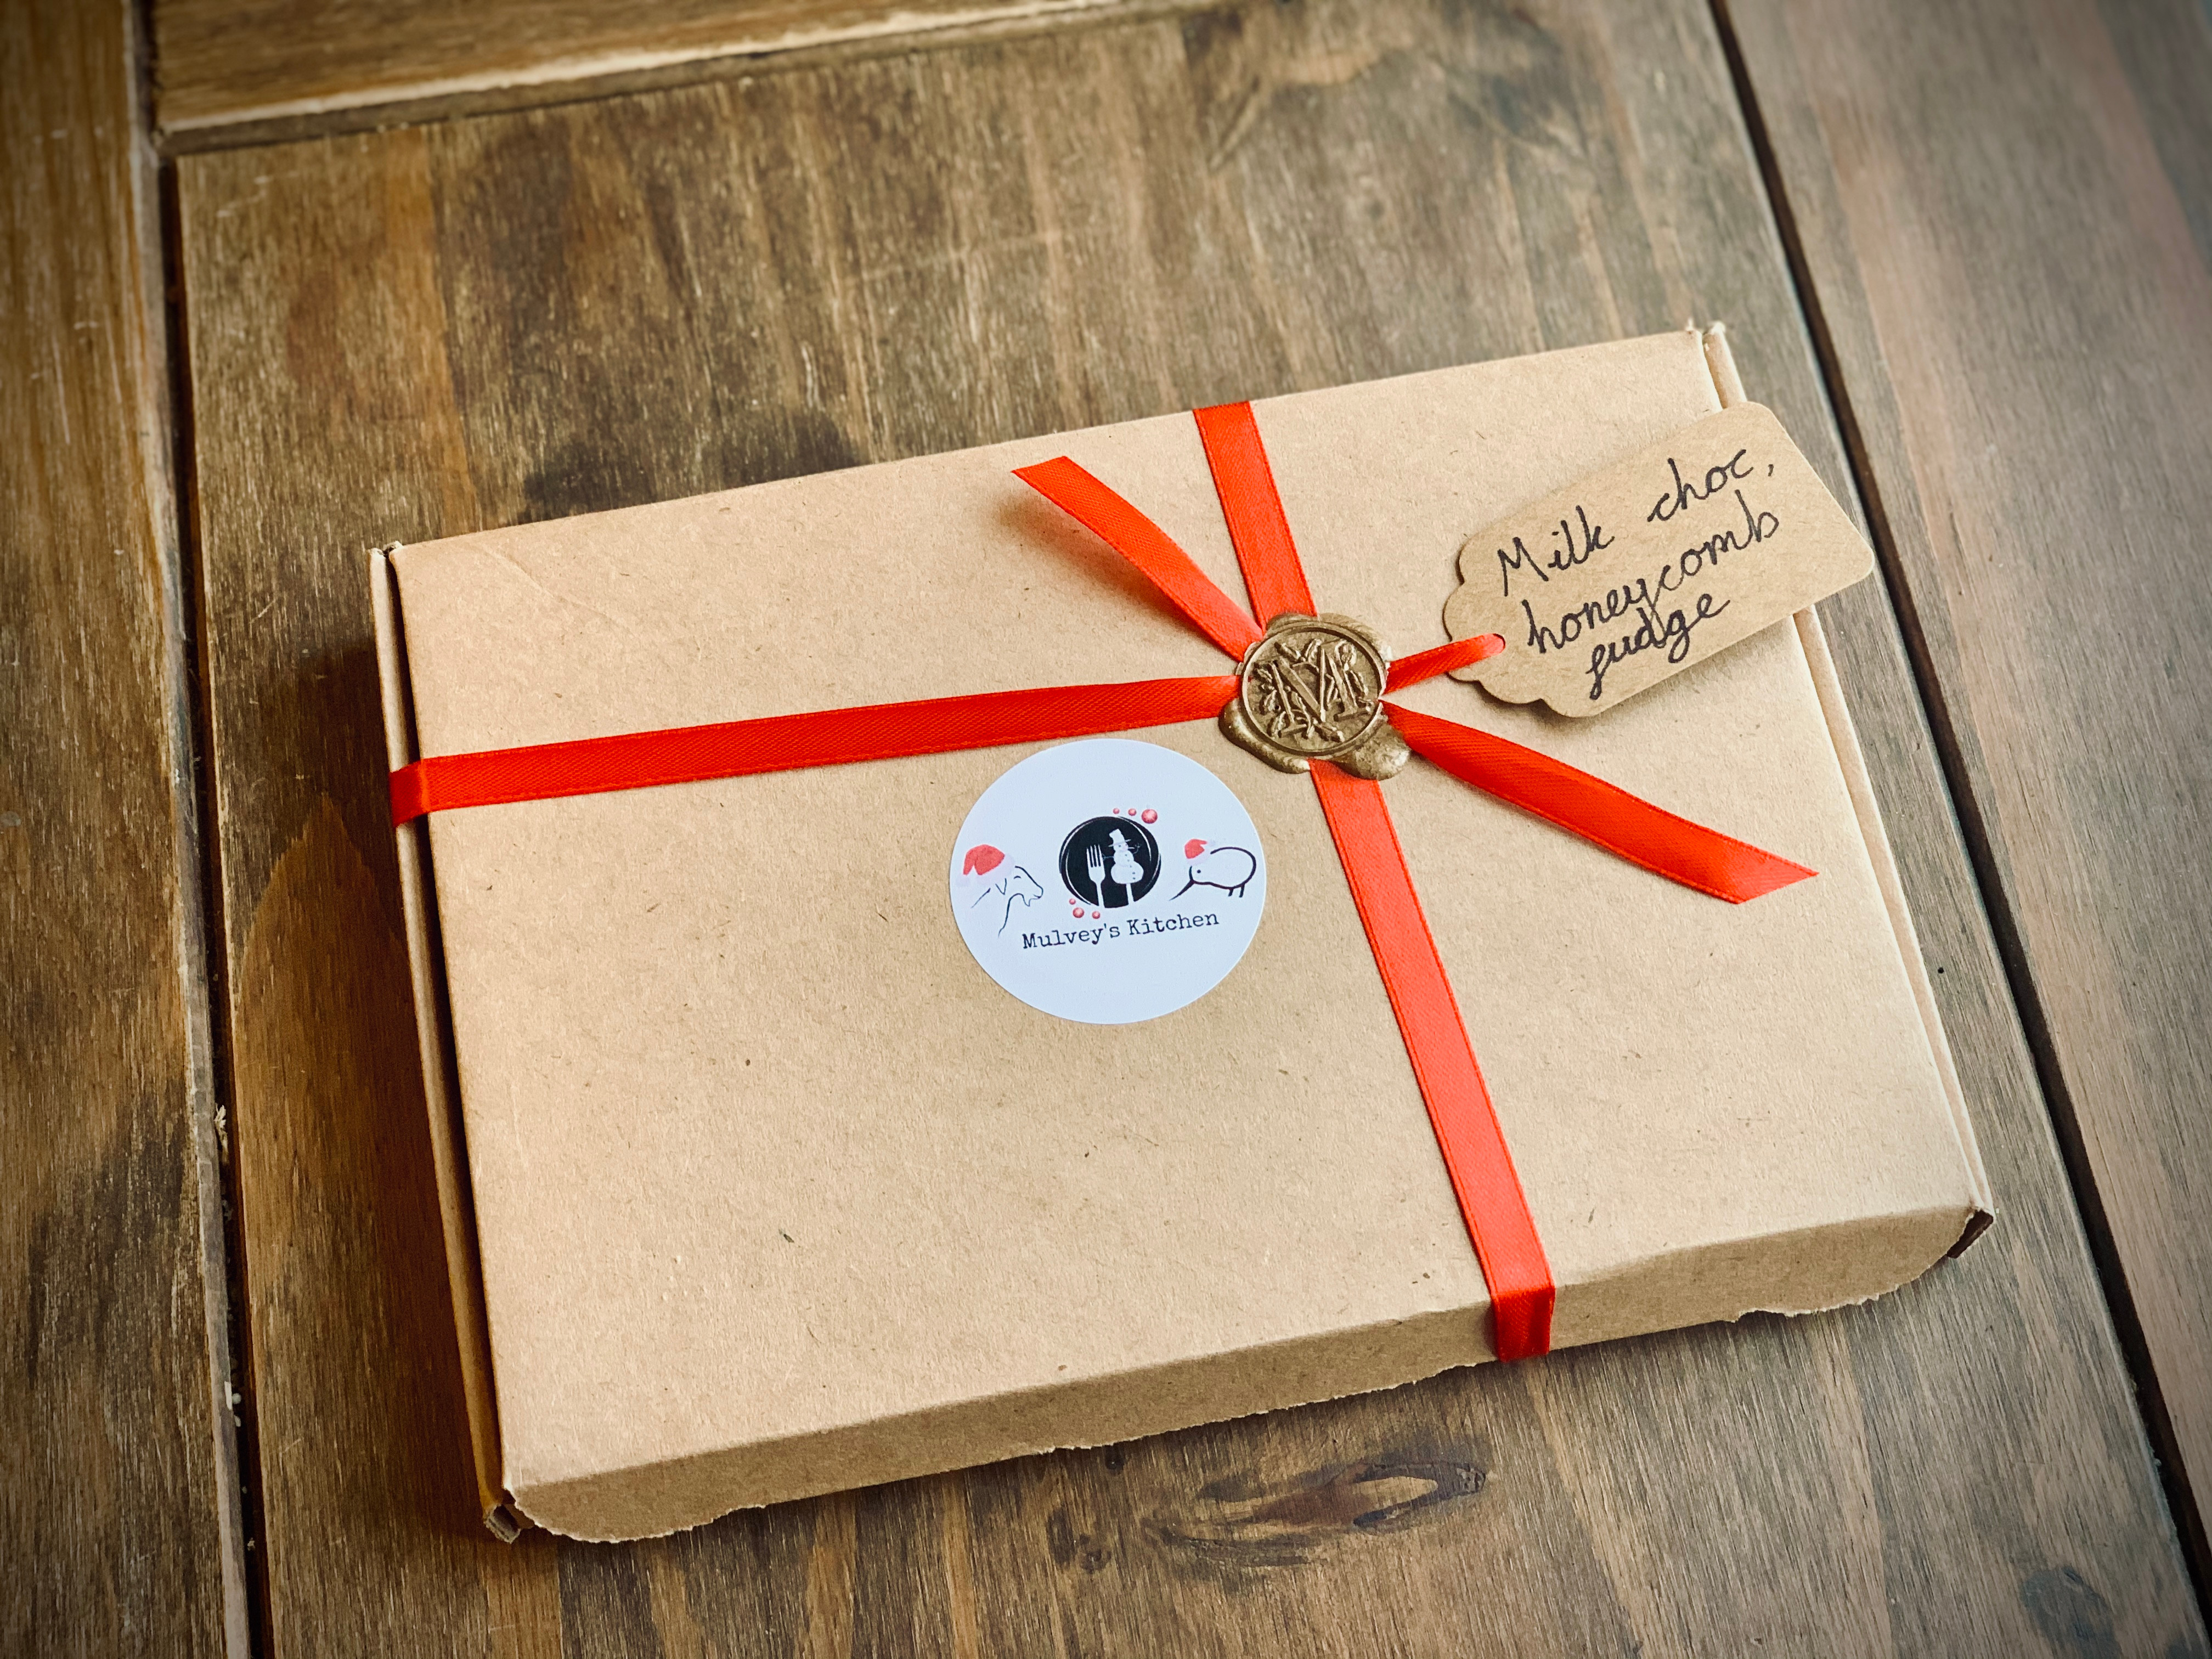 The monogrammed box